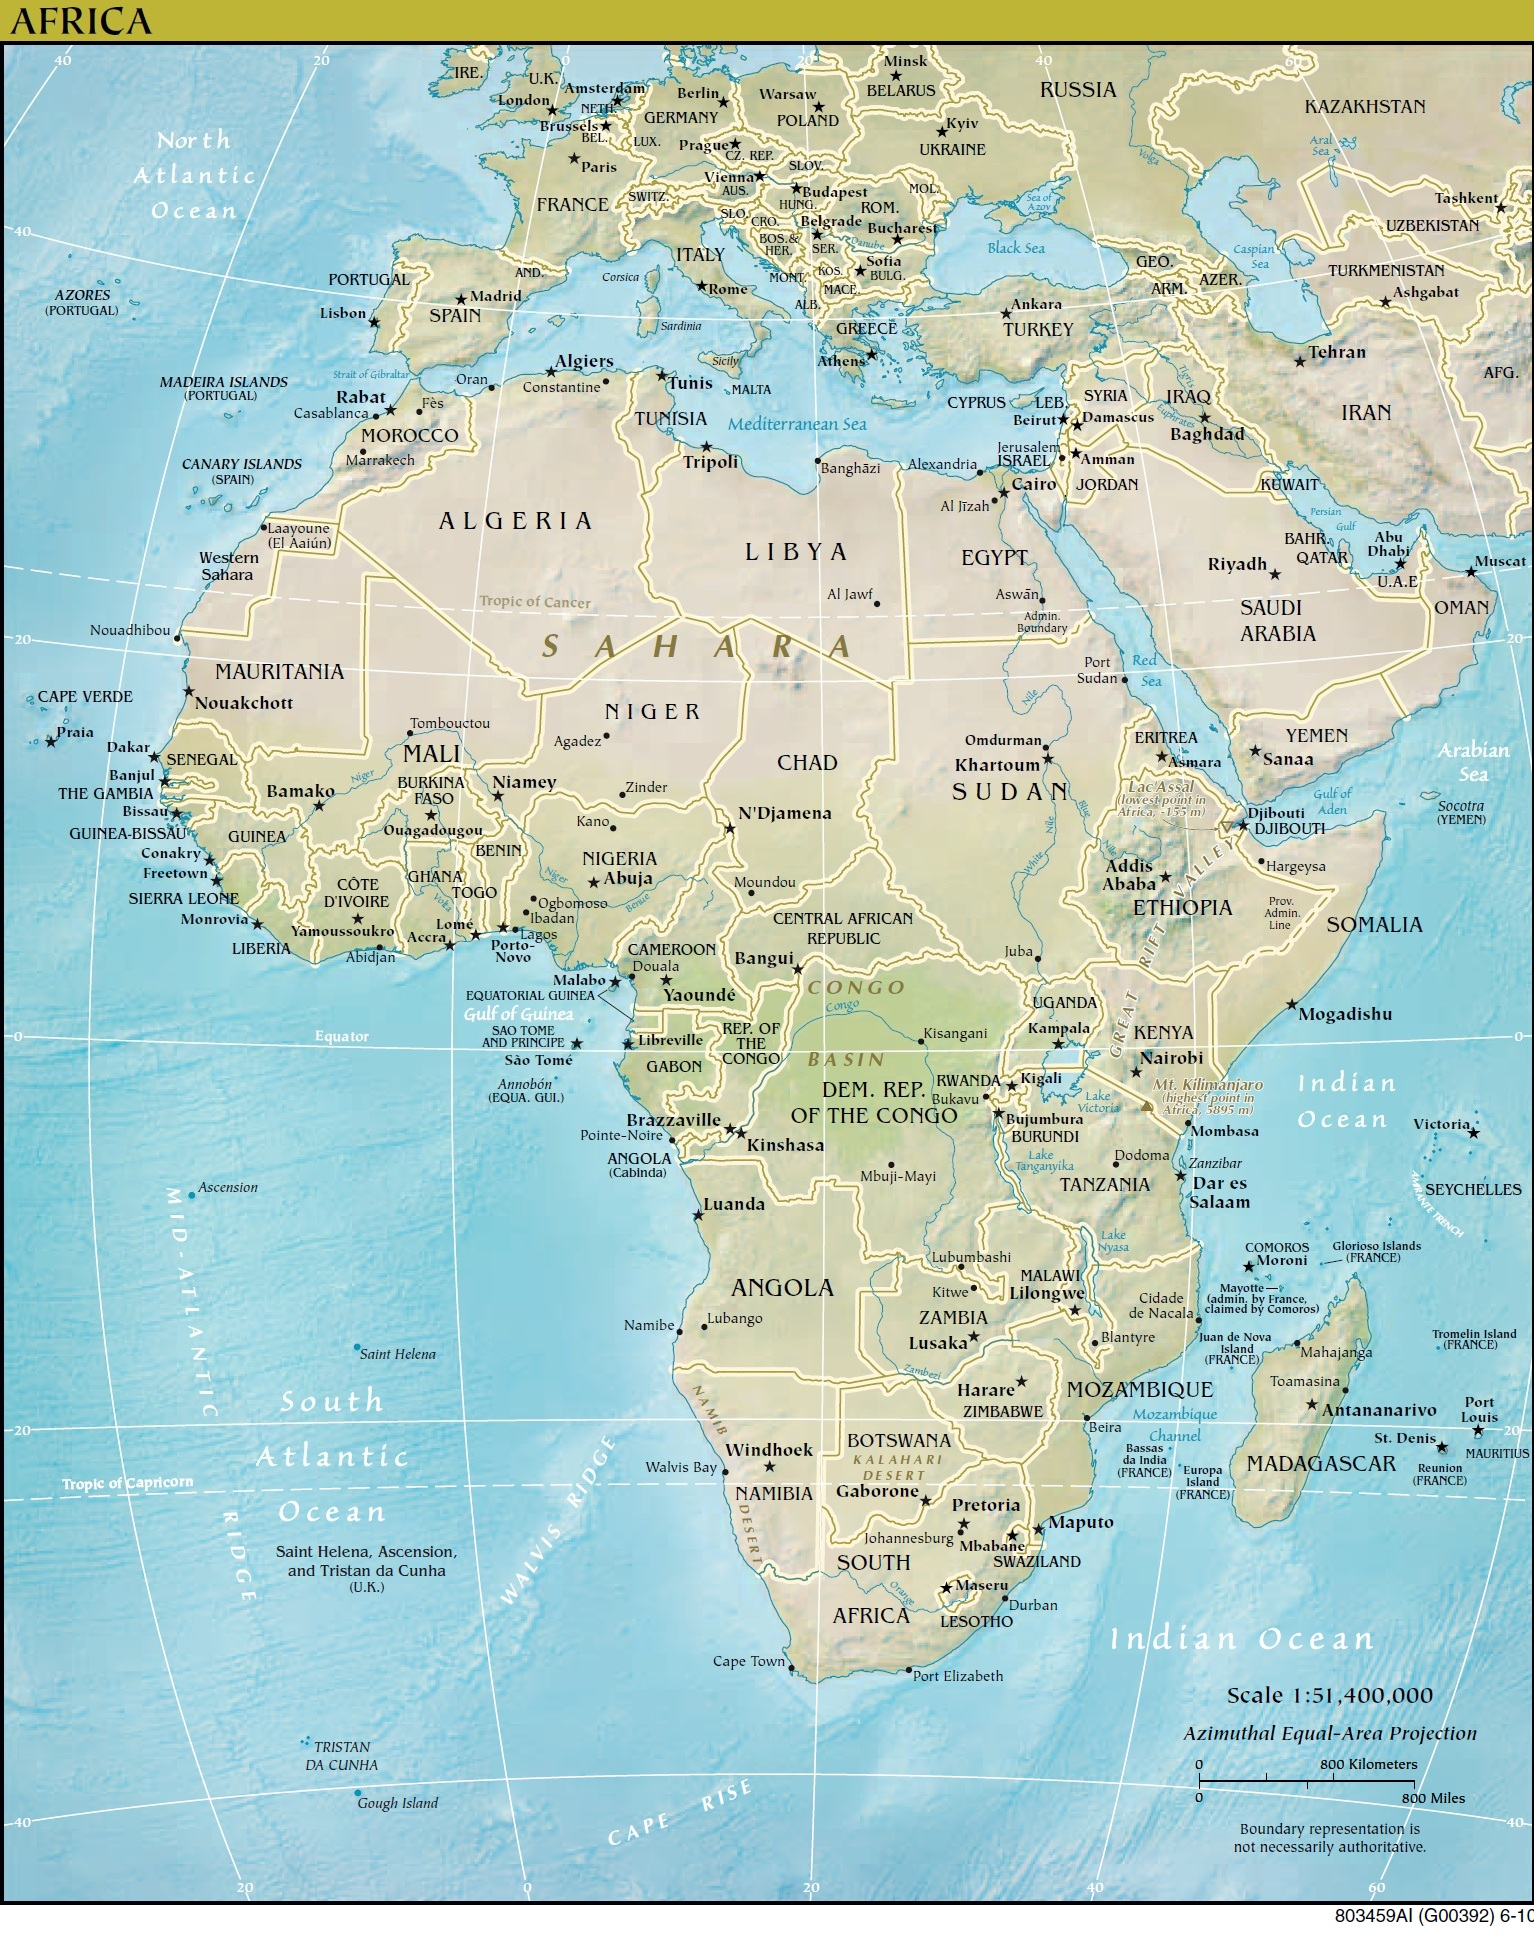 Click Here To See A Full Size Image Of The Africa Terrain And Political Map